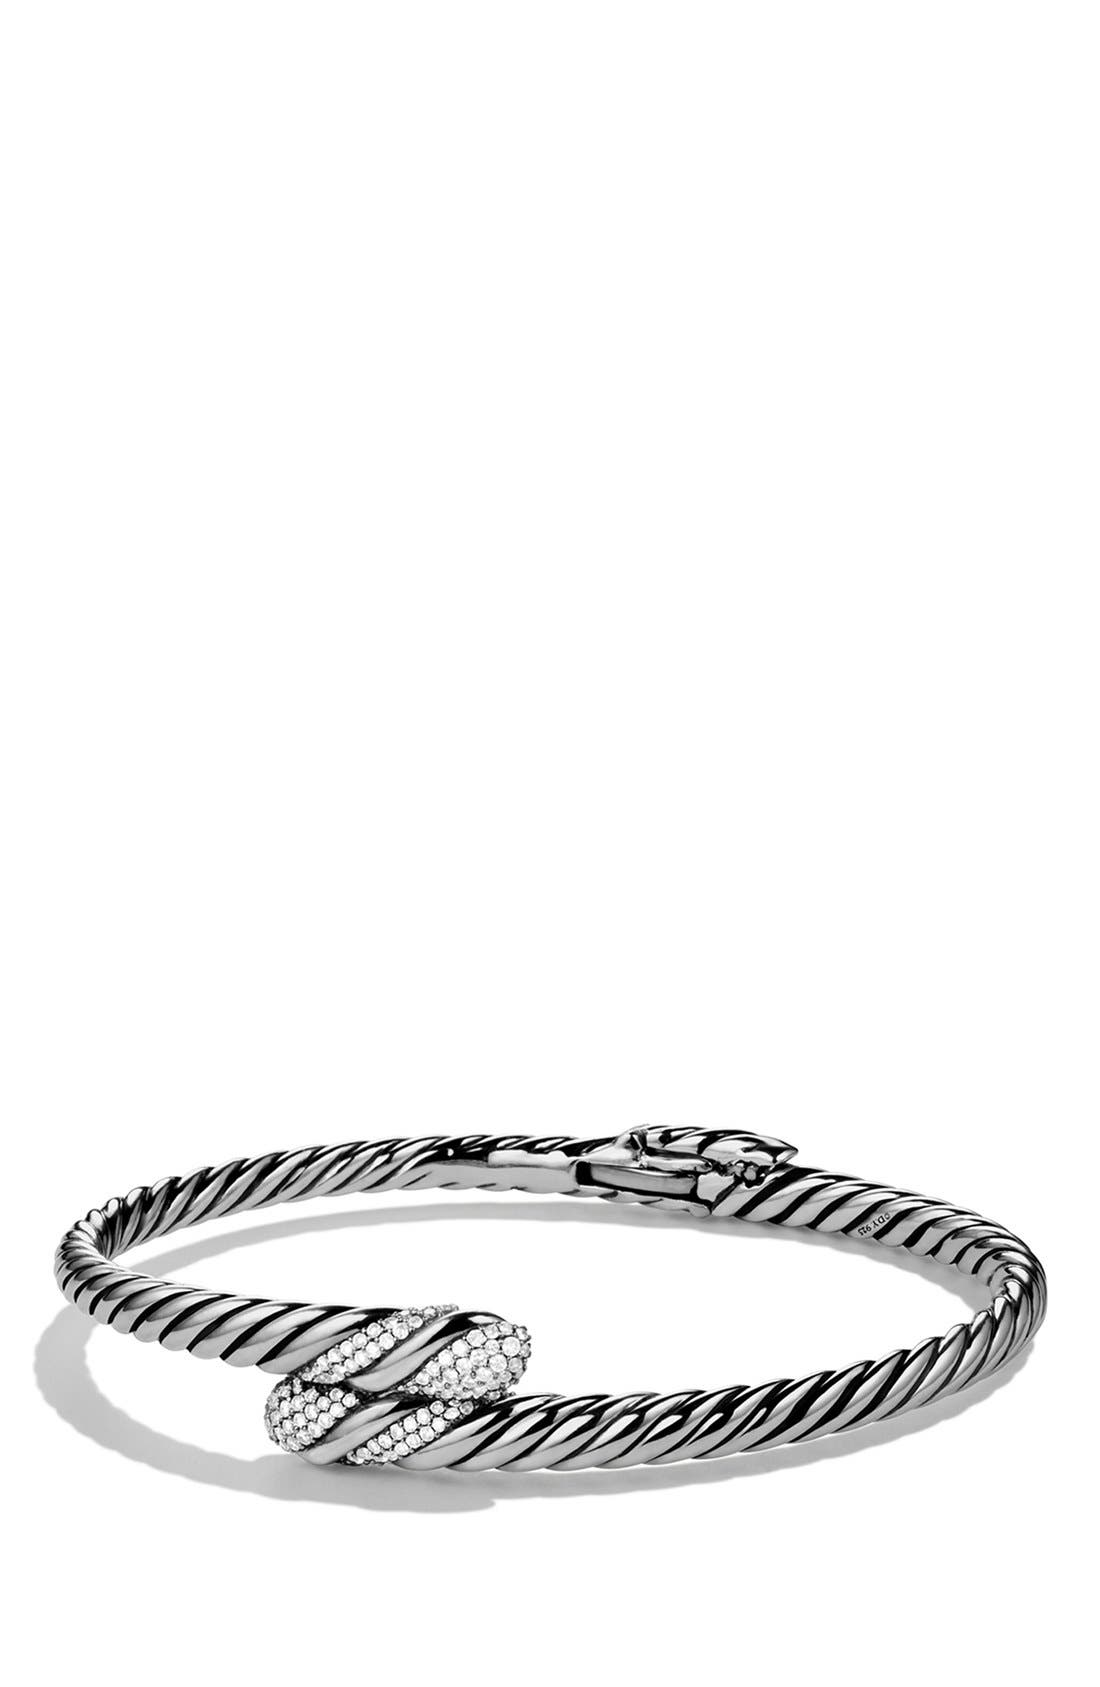 Alternate Image 1 Selected - David Yurman 'Willow' Single Row Bracelet with Diamonds